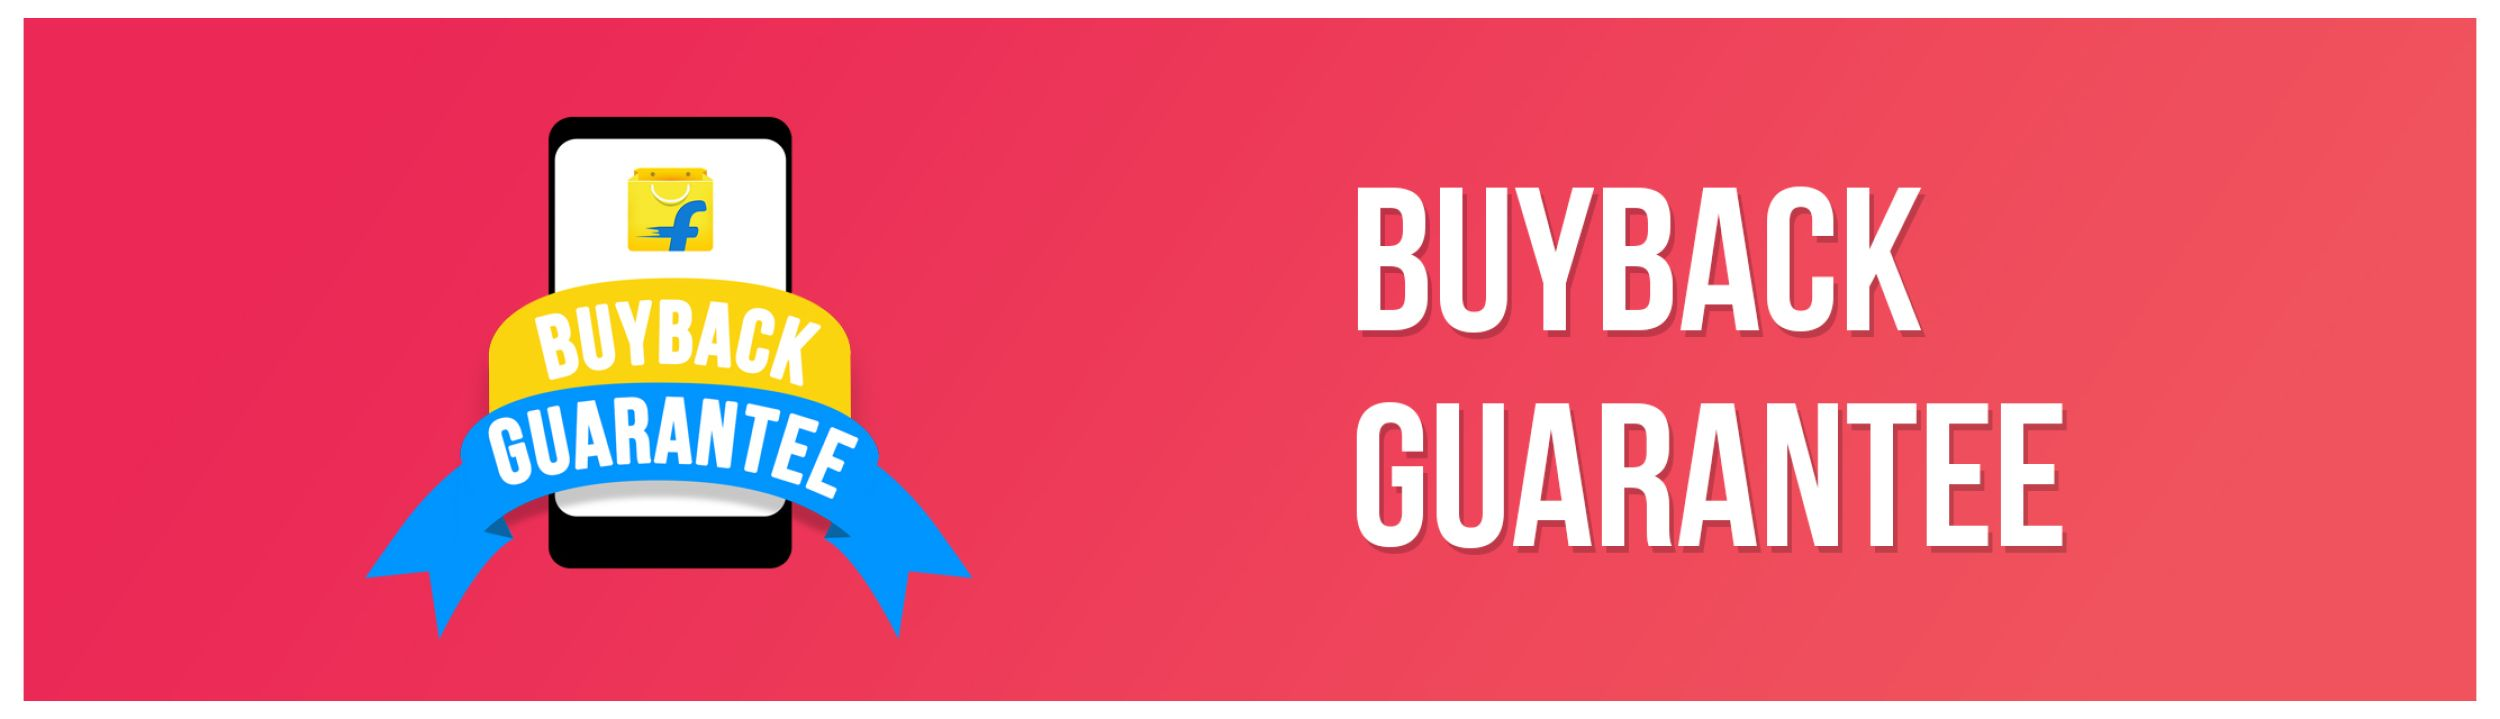 Buyback Guarantee Store Online - Buy Assured Buyback